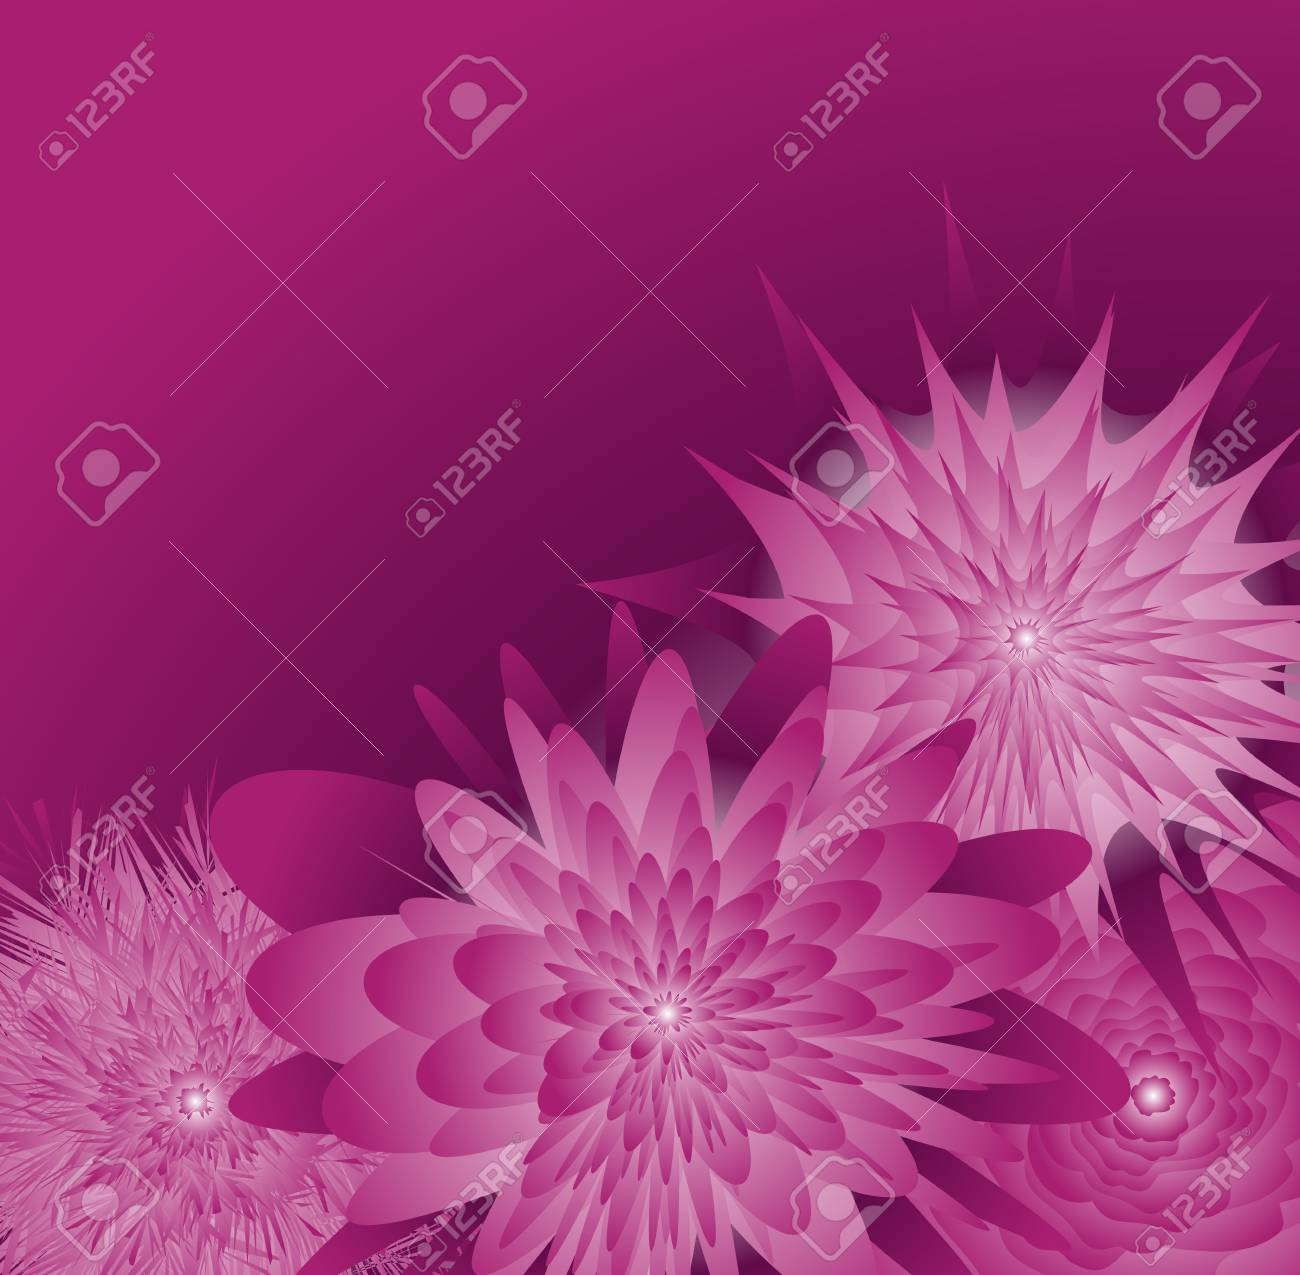 Flowers floral background for poster Stock Vector - 13412610